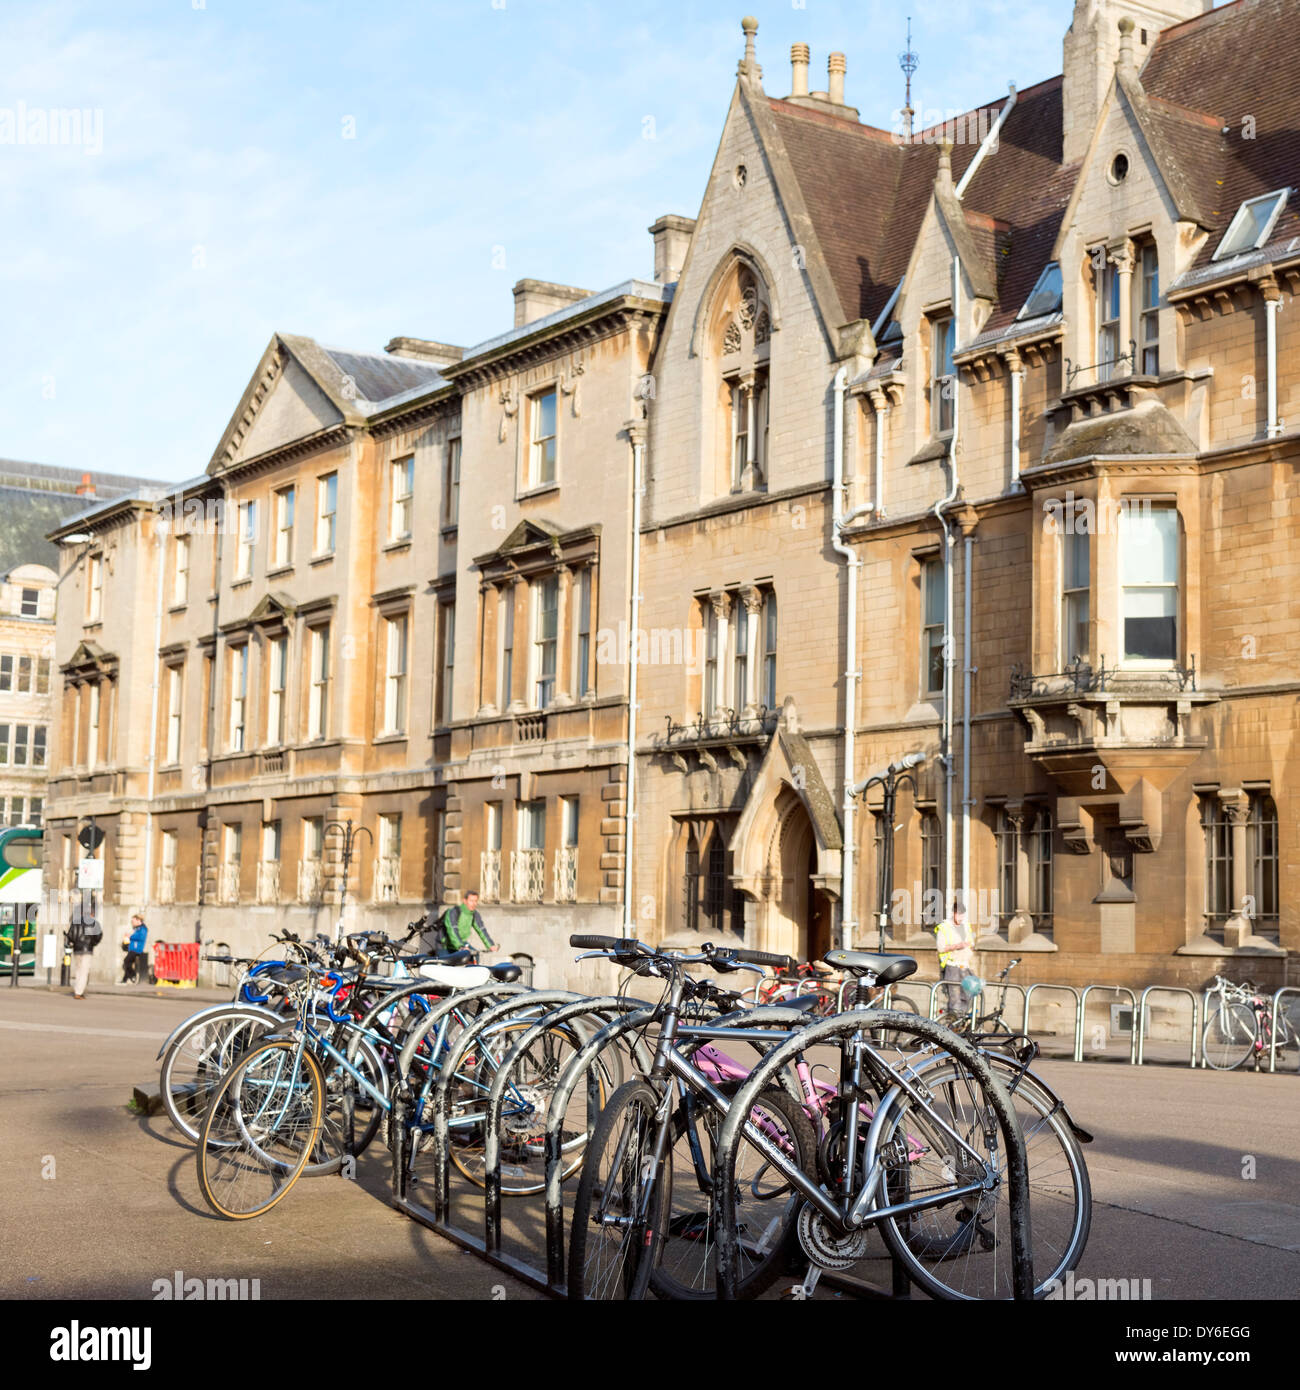 Bicycles in Broad Street, Oxford City centre, Oxfordshire, UK. - Stock Image